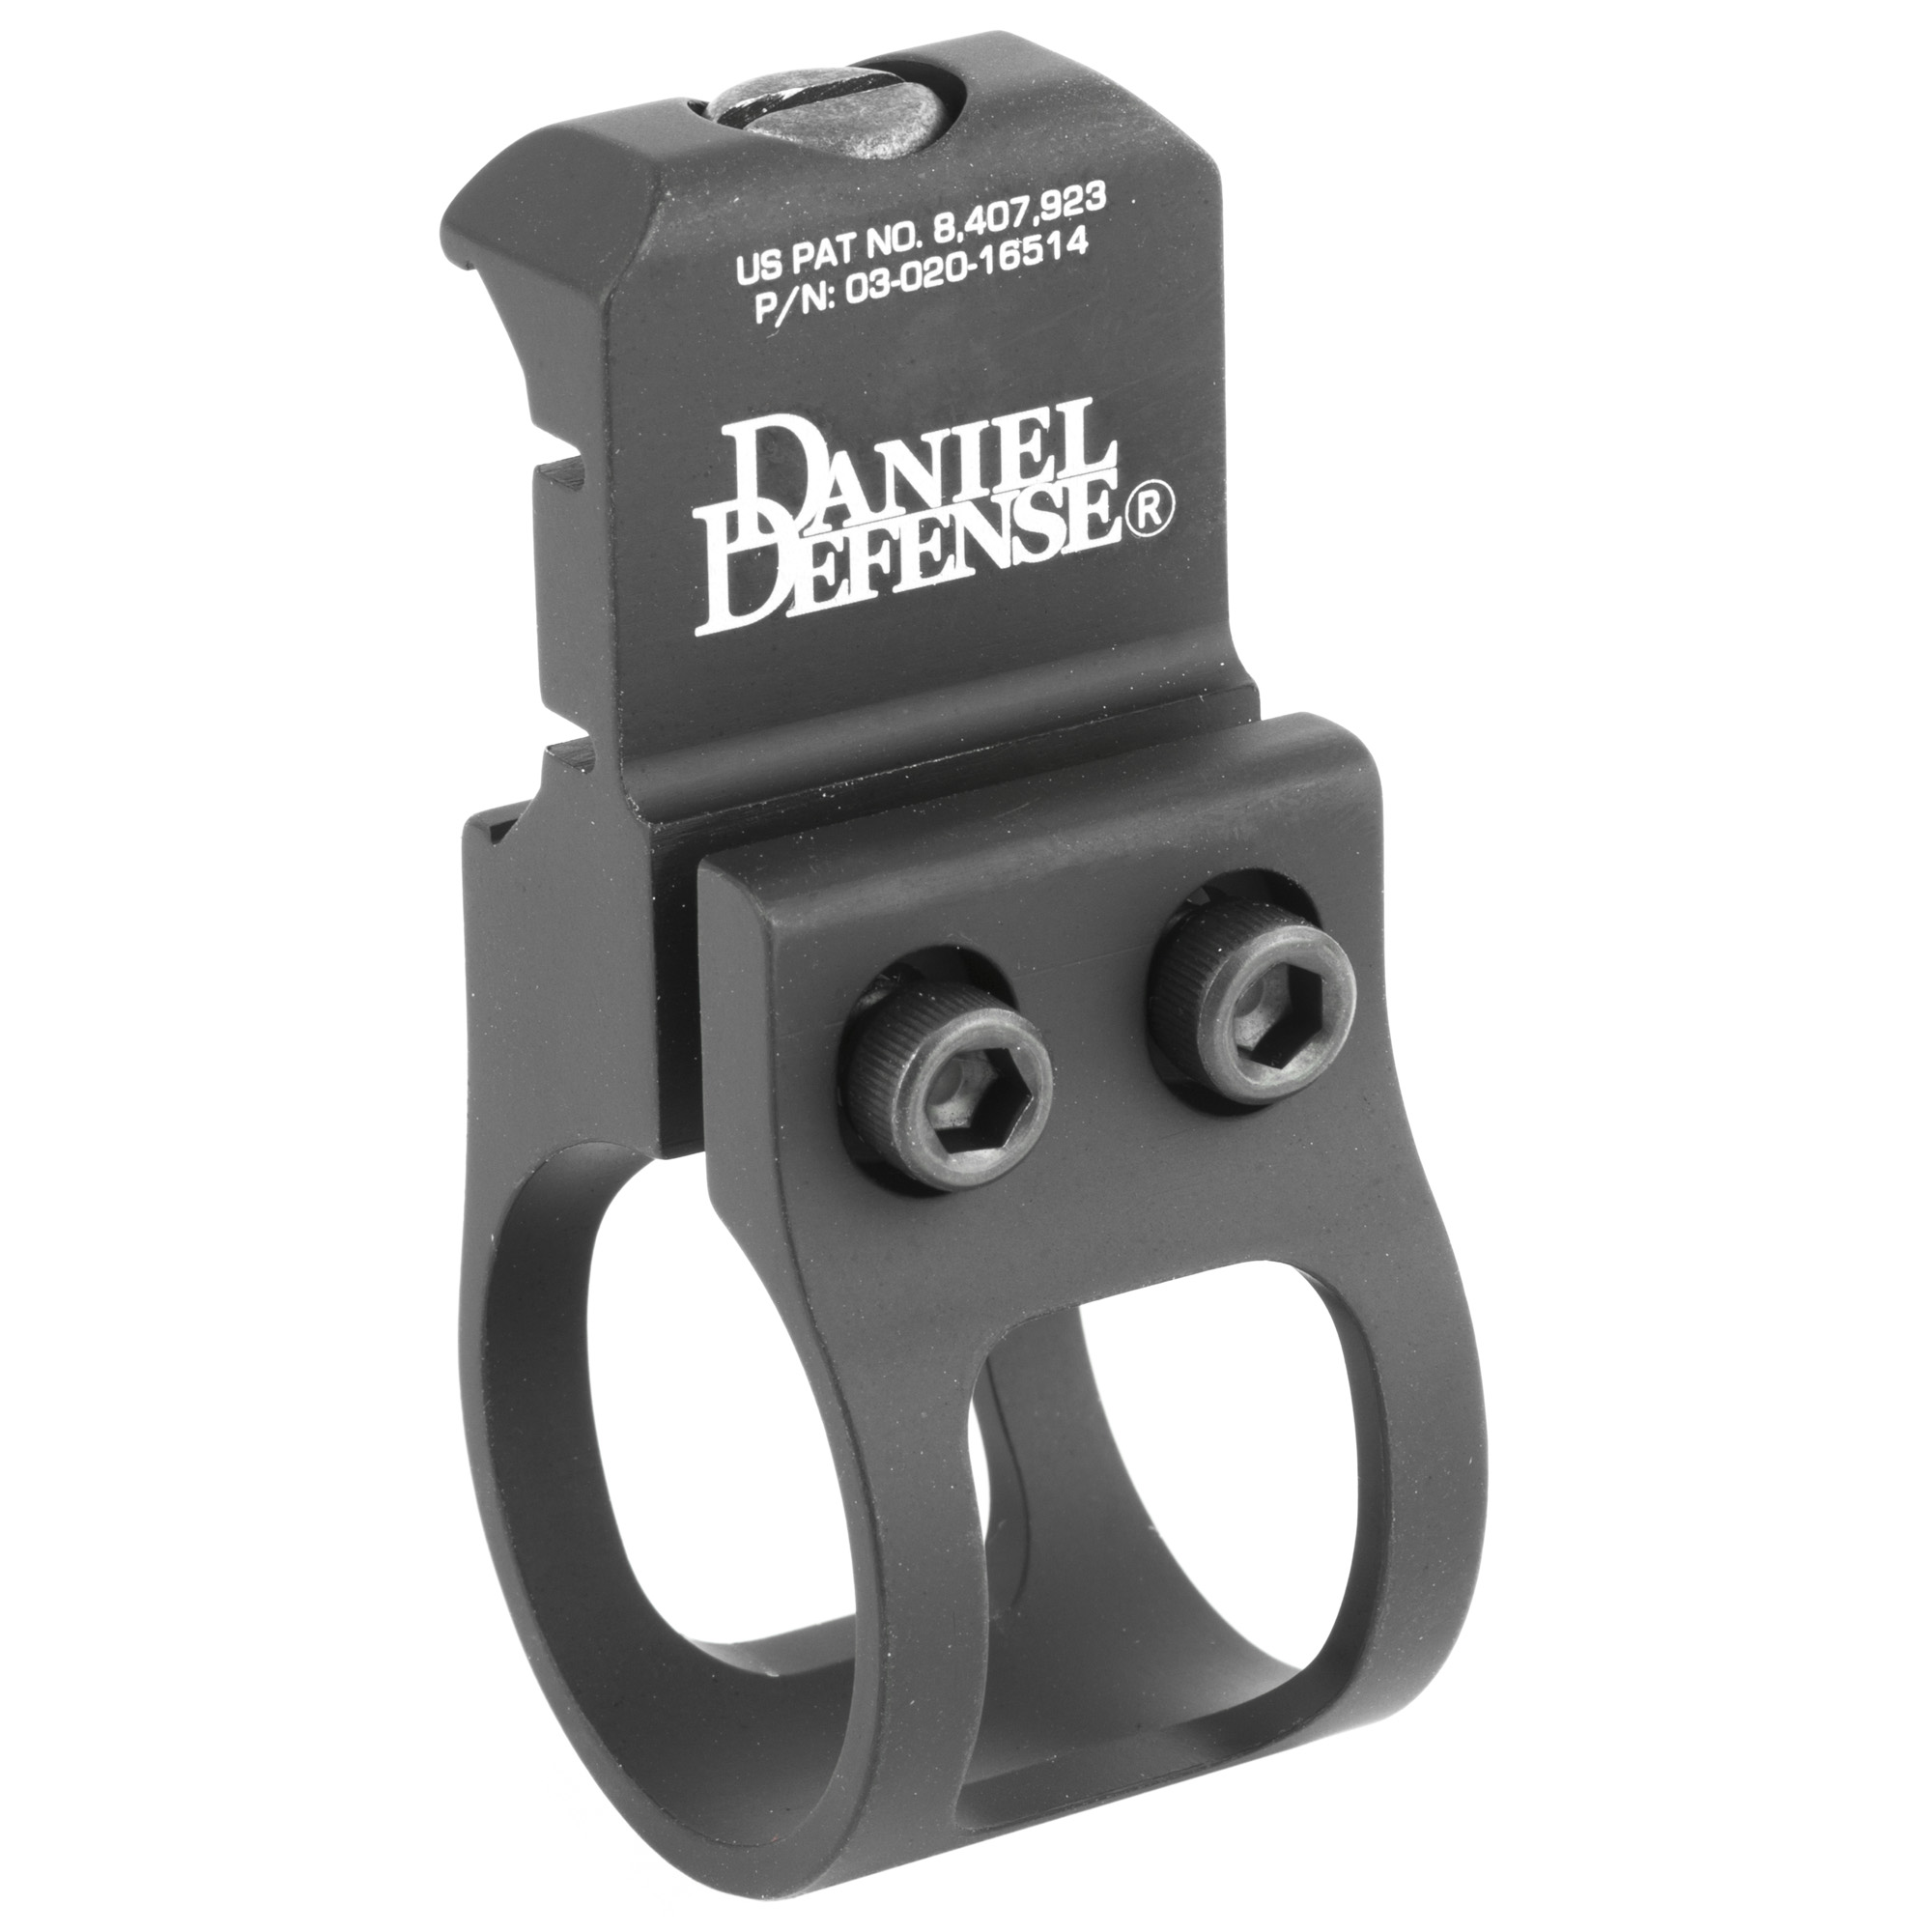 "Daniel Defense's AR-15 Offset Flashlight Mount (Rock & Lock) is designed for use in conjunction with a vertical foregrip which is mounted on the bottom rail. The Offset Flashlight Mount may then be mounted on either side rail for ambidextrous use. It is designed so that as the shooters forward hand grips the vertical foregrip"" his thumb has quick and perfect access to the rear button of his flashlight. This setup eliminates many accidental light discharges because although the action to the on/off button is quick and natural"" it is also deliberate. Their patented ""Rock and Lock"" one piece mounting system creating an even more robust and streamlined mount as well as simplified installation on any MIL-STD-1913 picatinny rail."